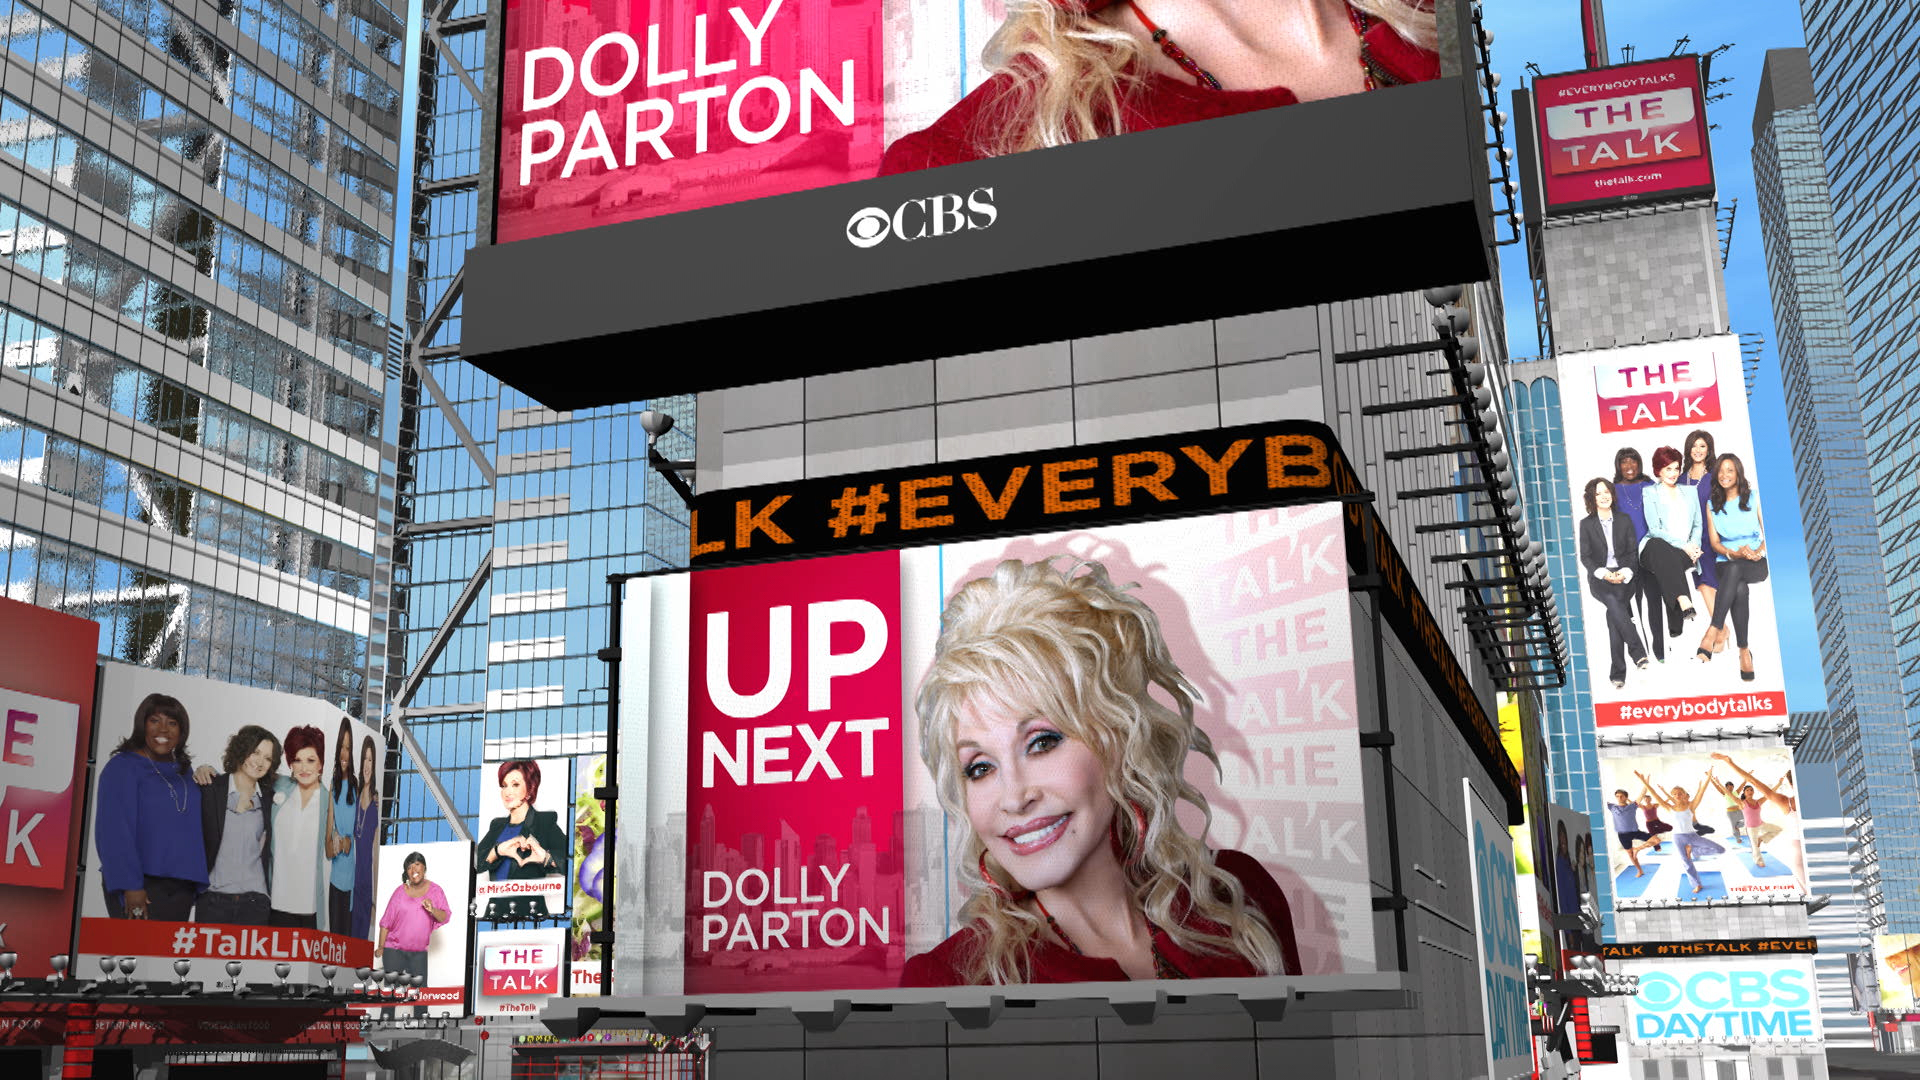 dolly-parton-times-square.jpg